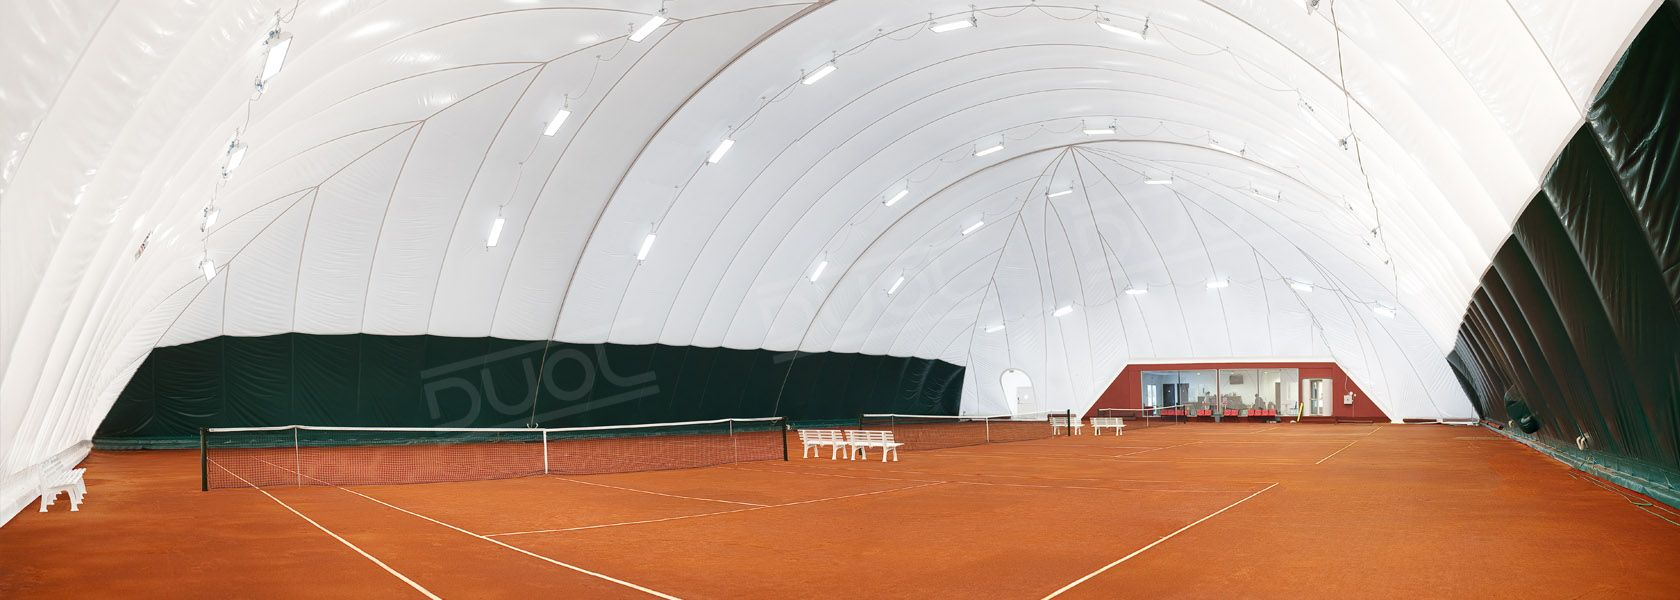 Tennis air domes